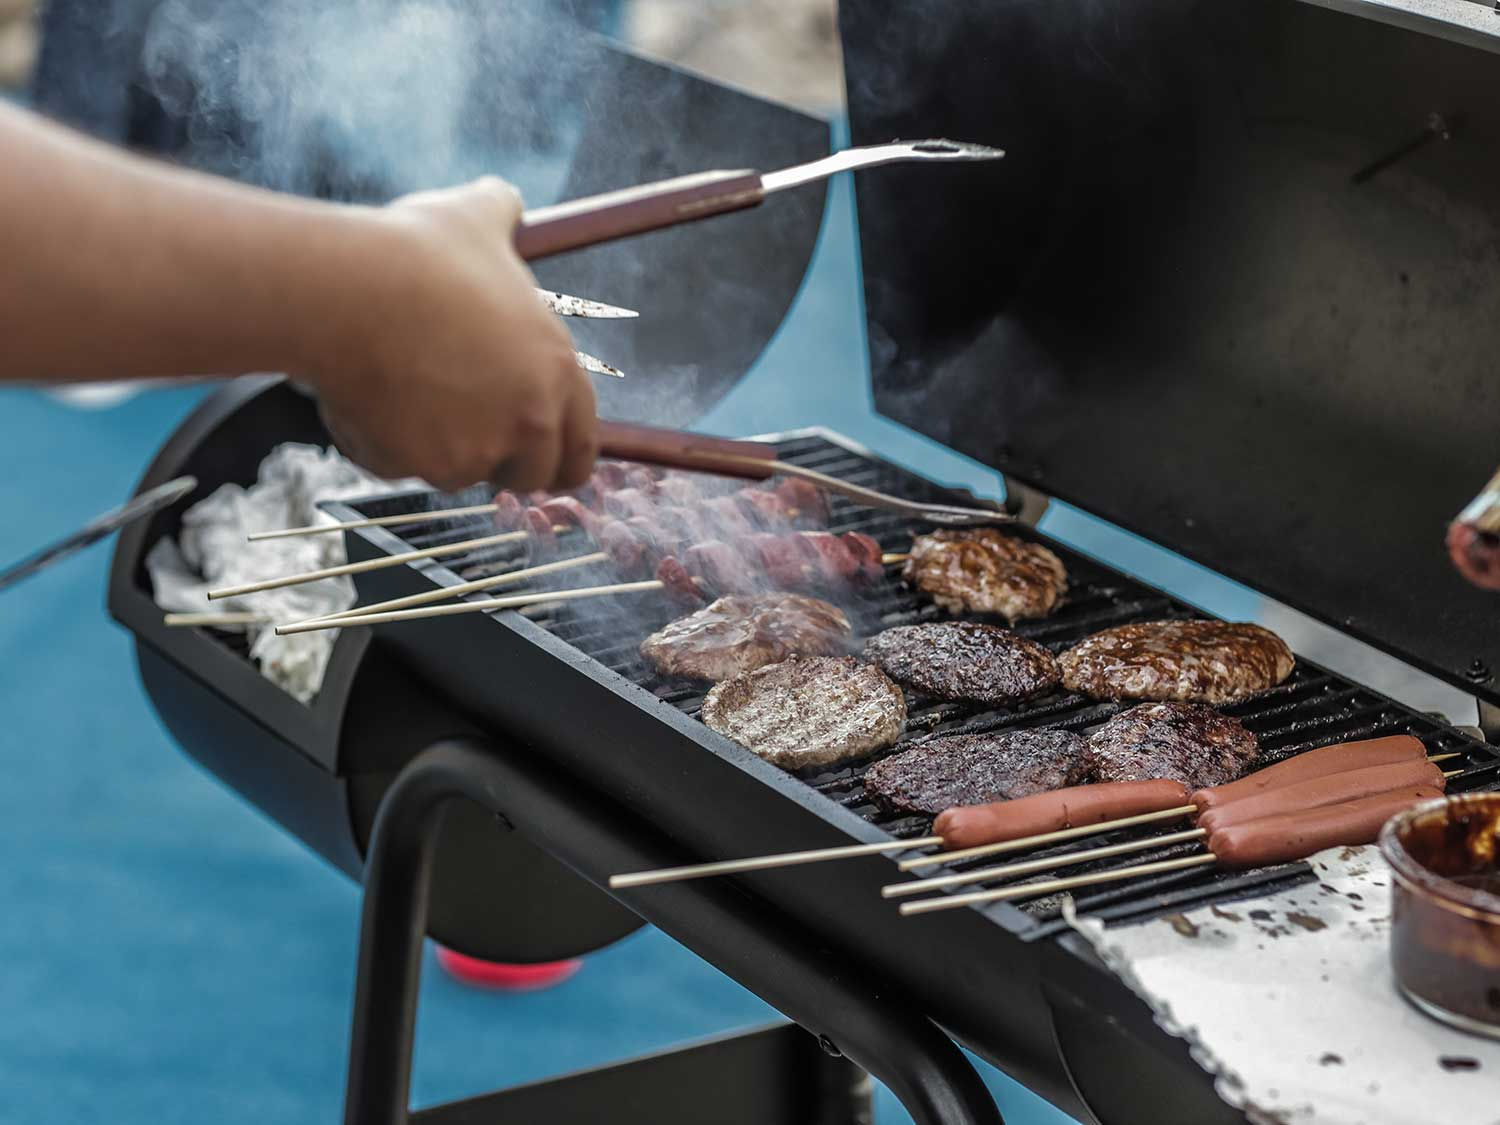 Grilling hamburgers and hotdogs on the barbecue grill.